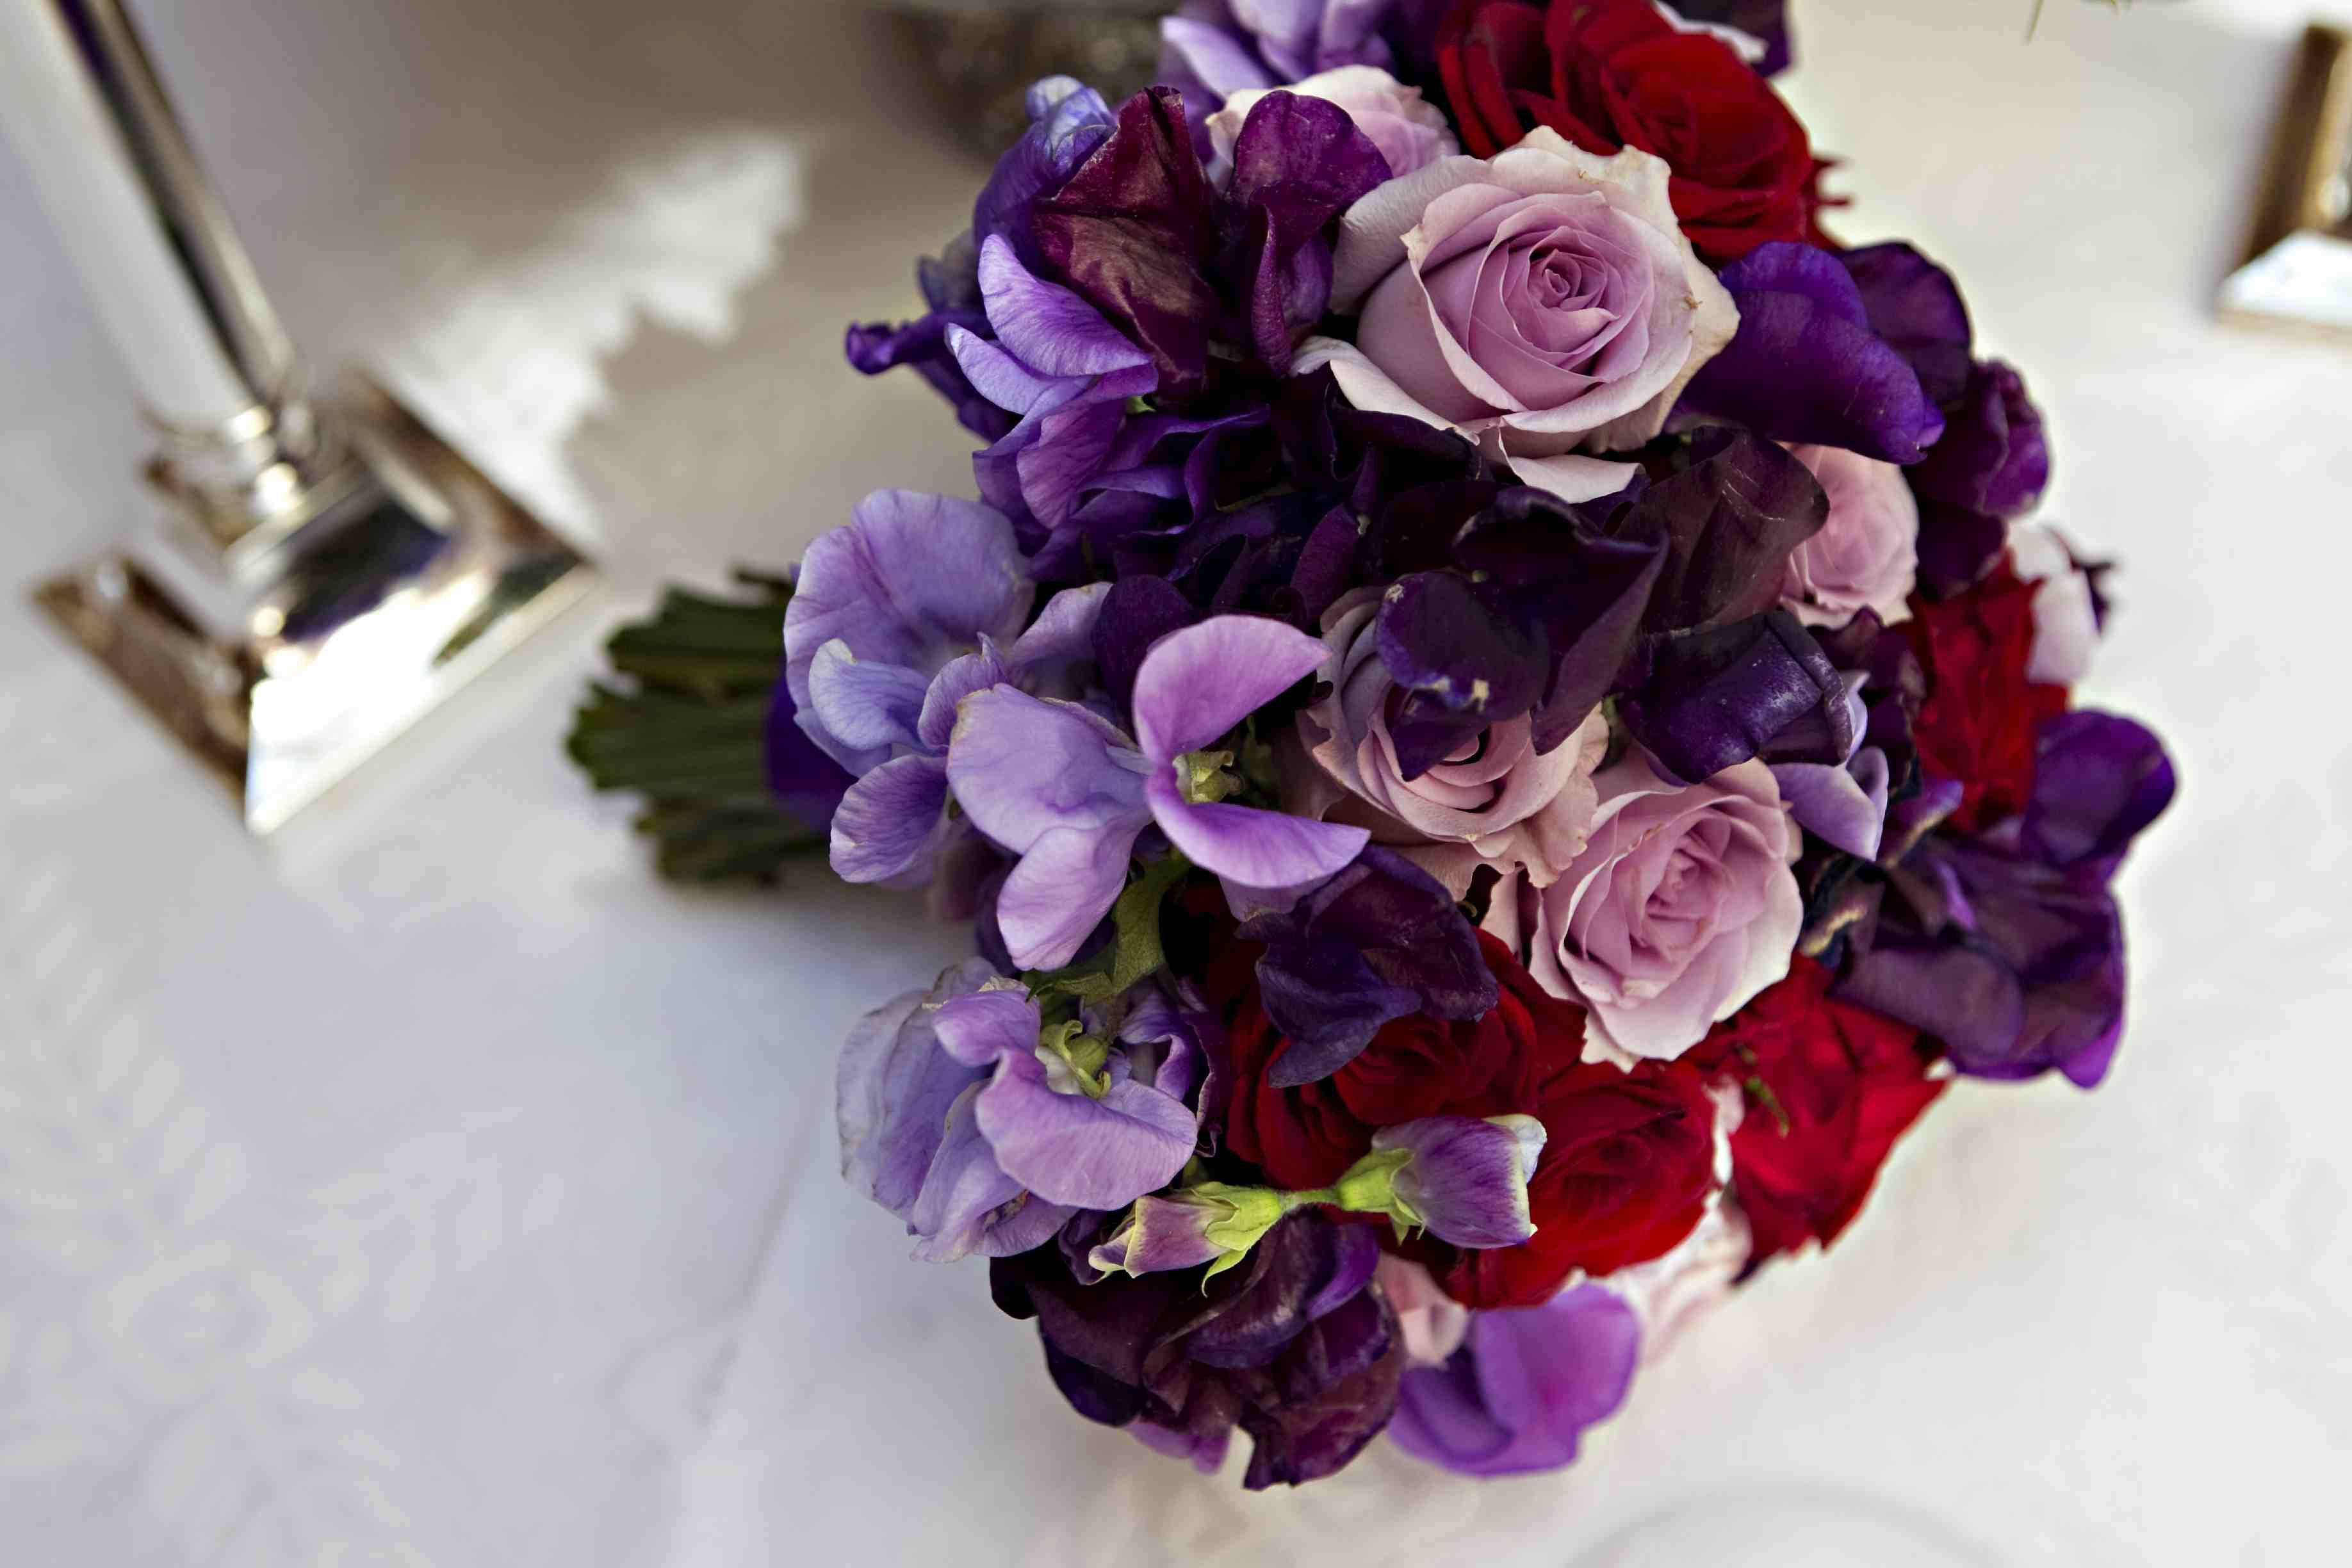 Red and lilac wedding bouquet wedding august 26 2014 john d ray red and lilac wedding bouquet wedding august 26 2014 john d ray 24 related images izmirmasajfo